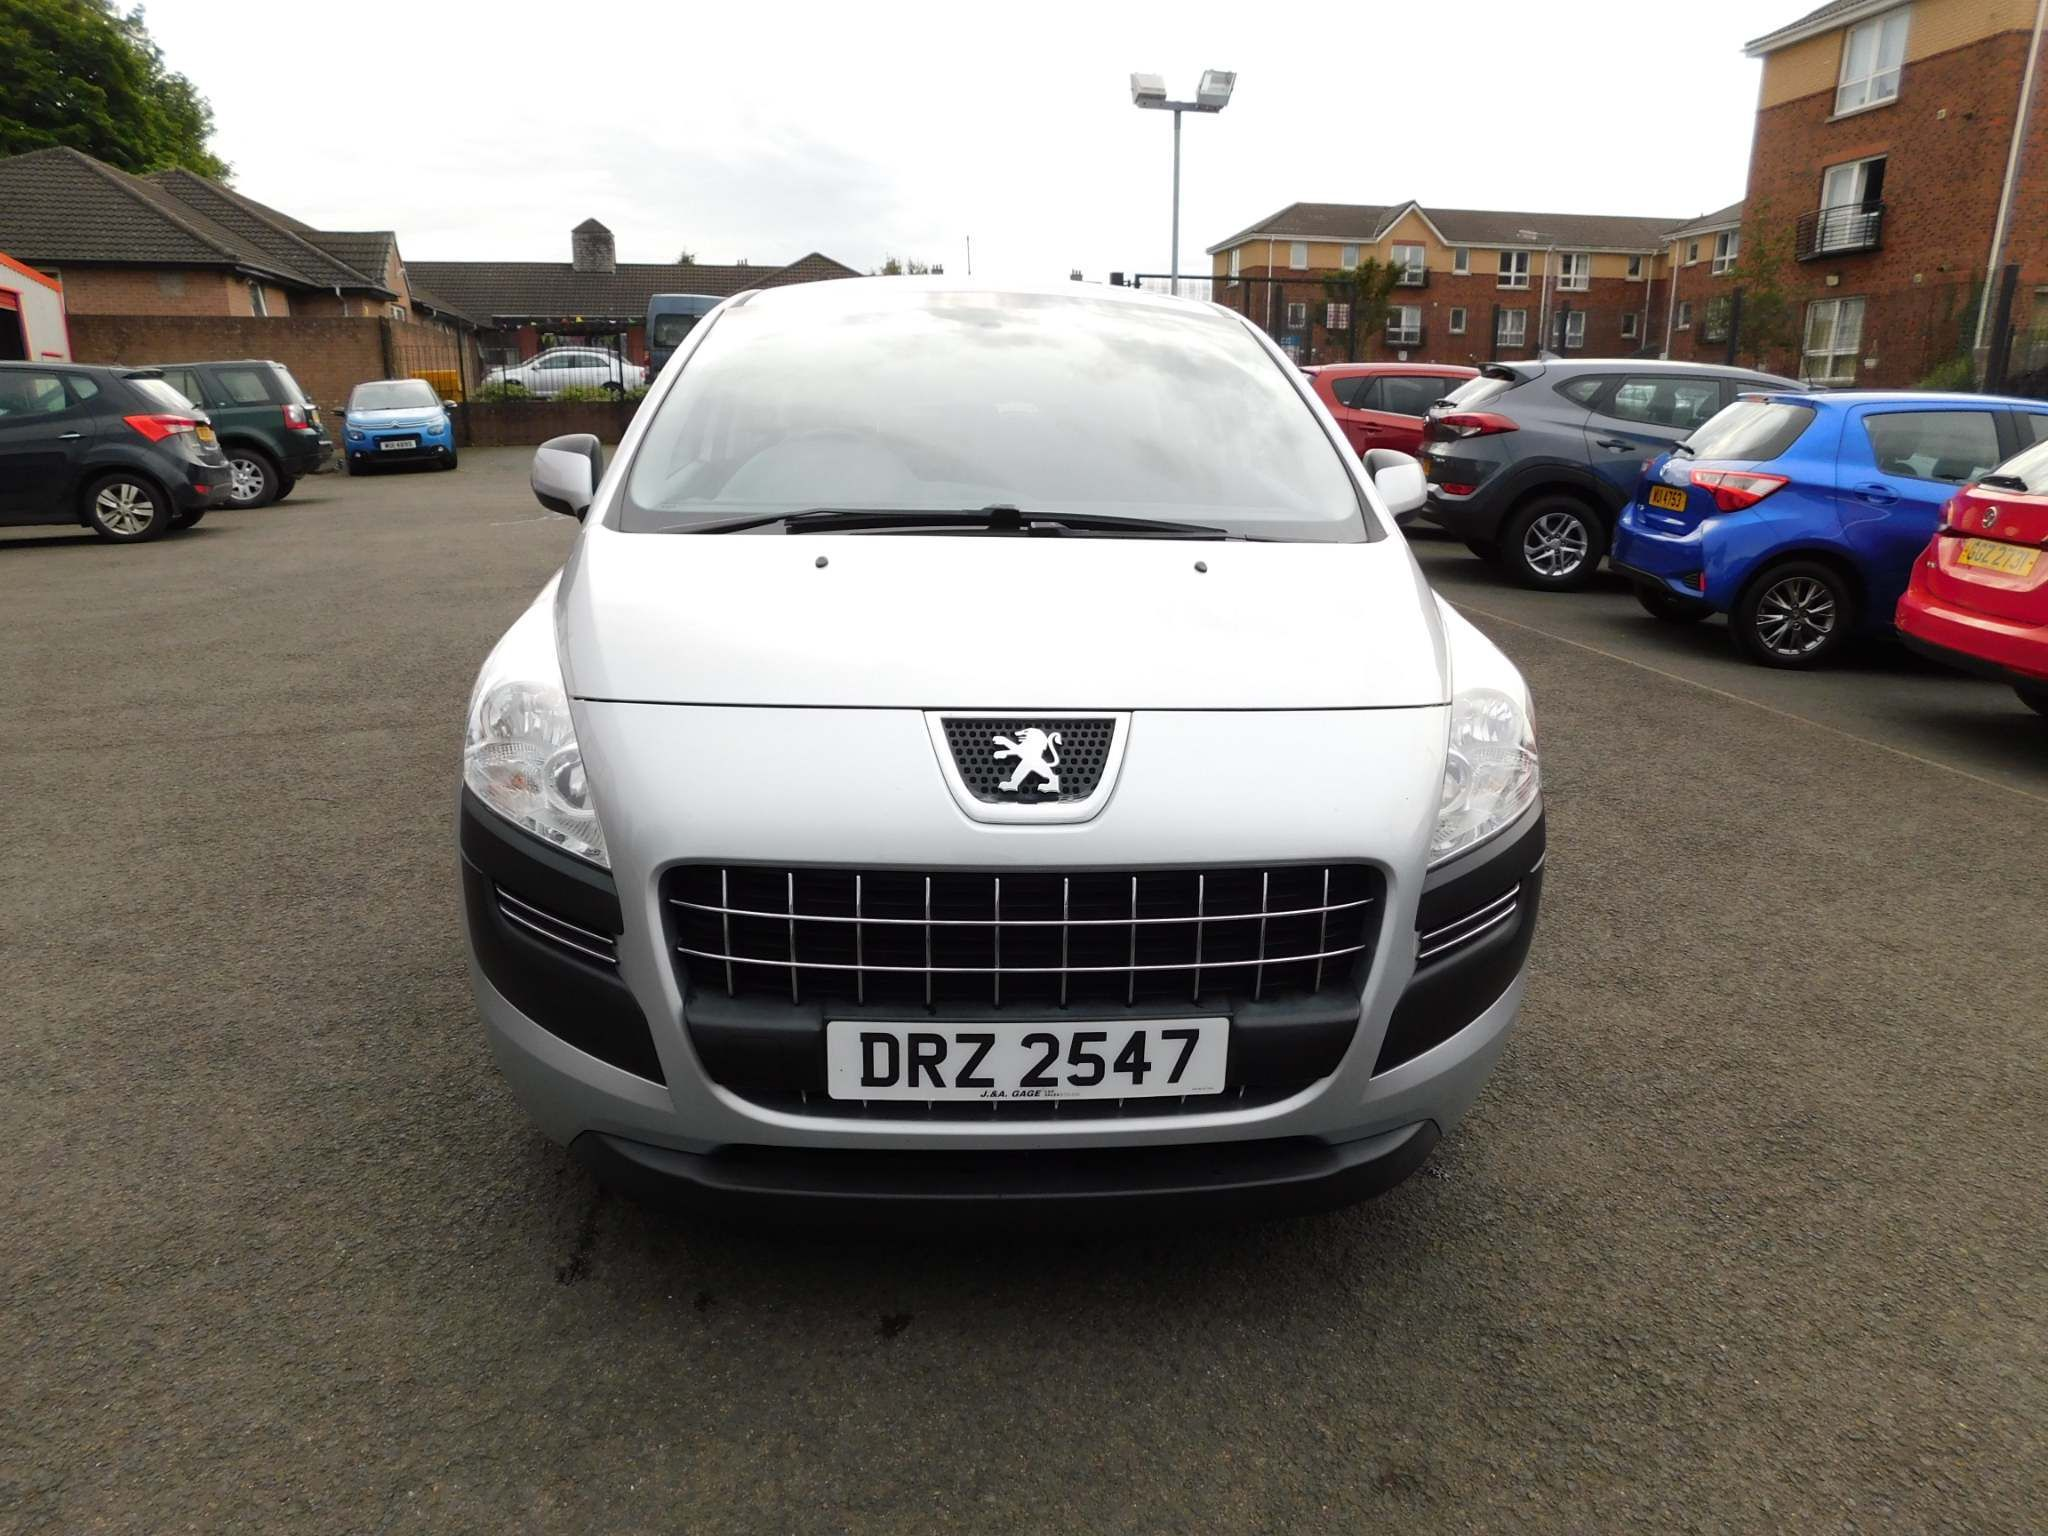 2011 PEUGEOT 3008 1.6 VTi Active Petrol Manual just in – Meadow Cars Carrickfergus full